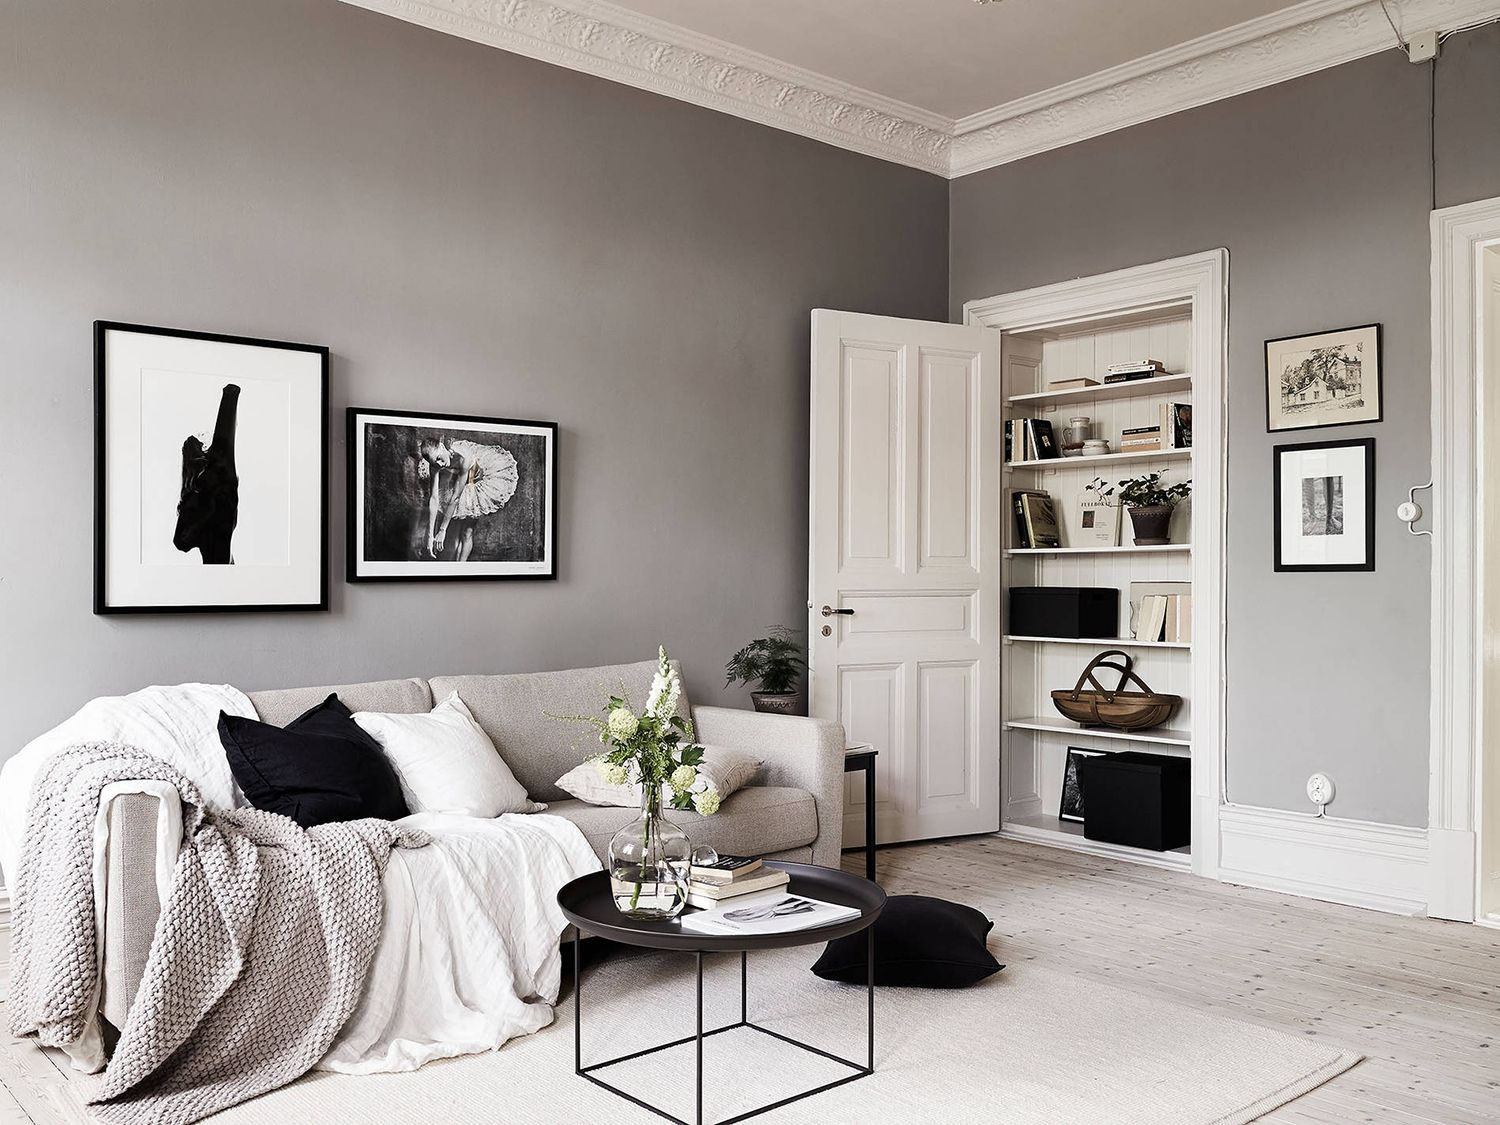 Is Black A Neutral Color a swedish home with neutral colors, gray, white and black color